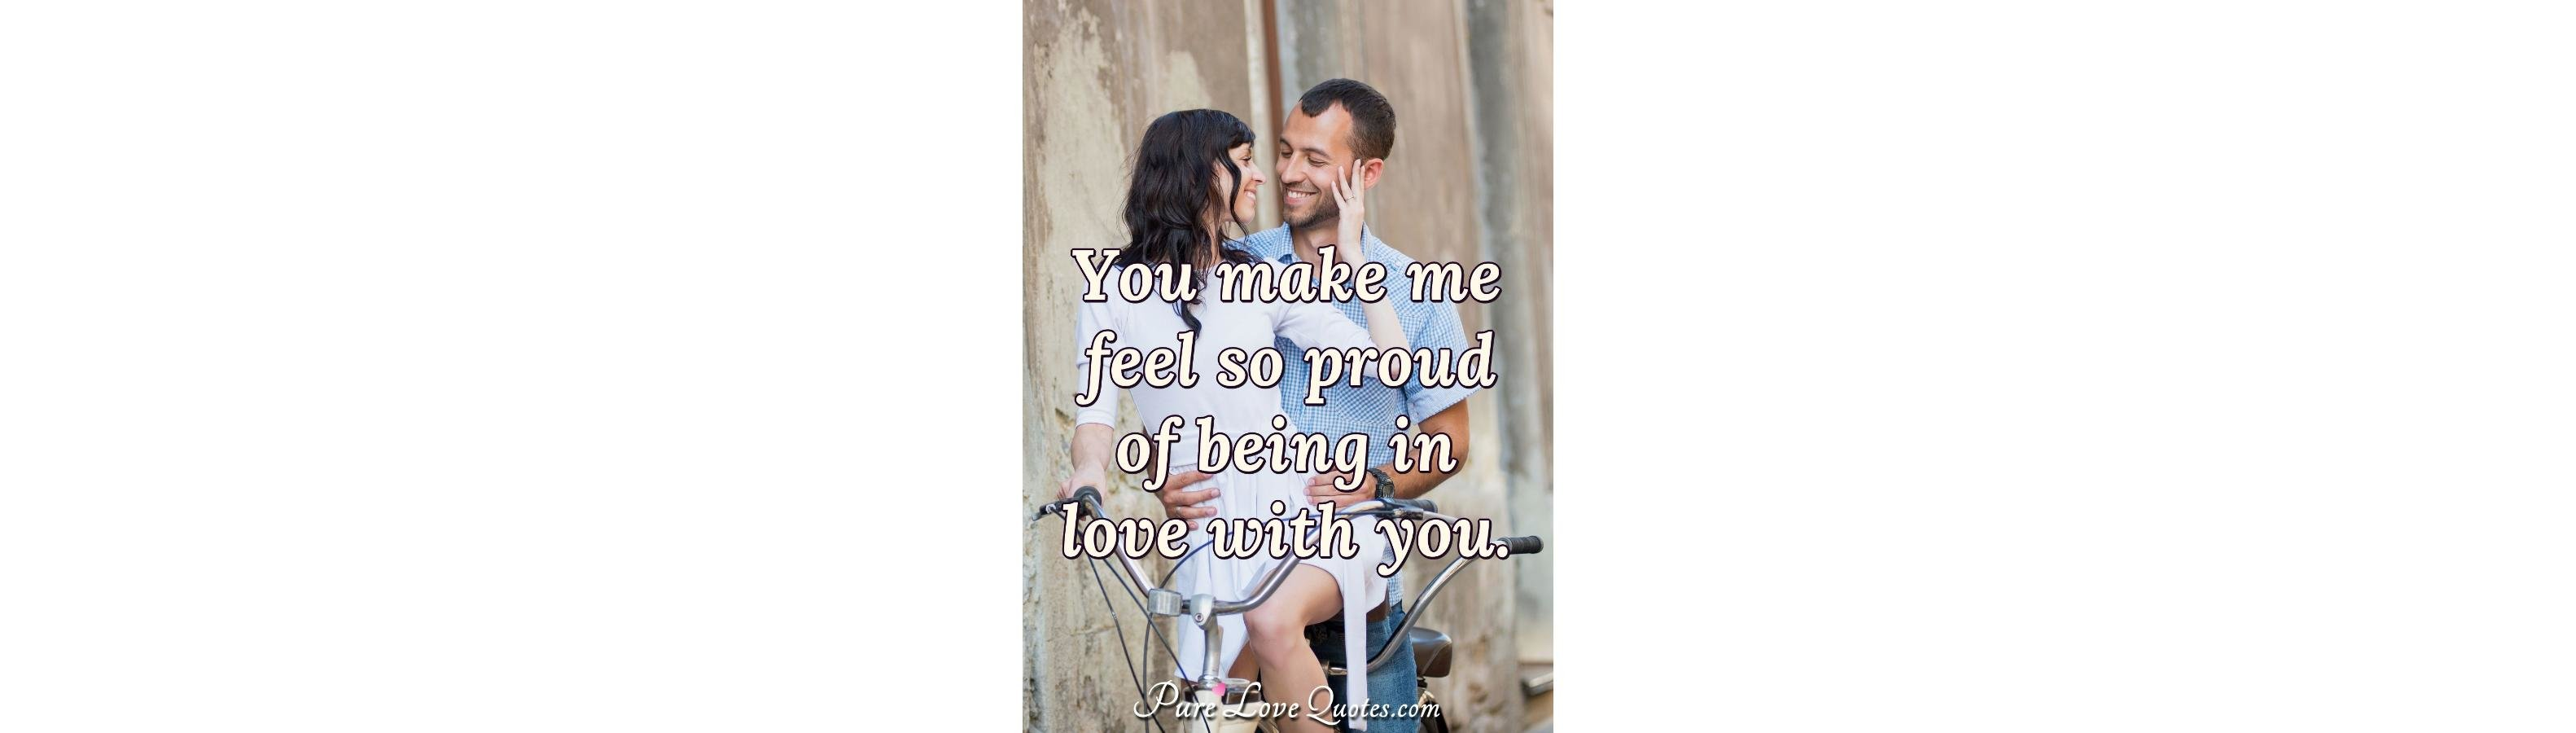 You Make Me Feel So Proud Of Being In Love With You Purelovequotes